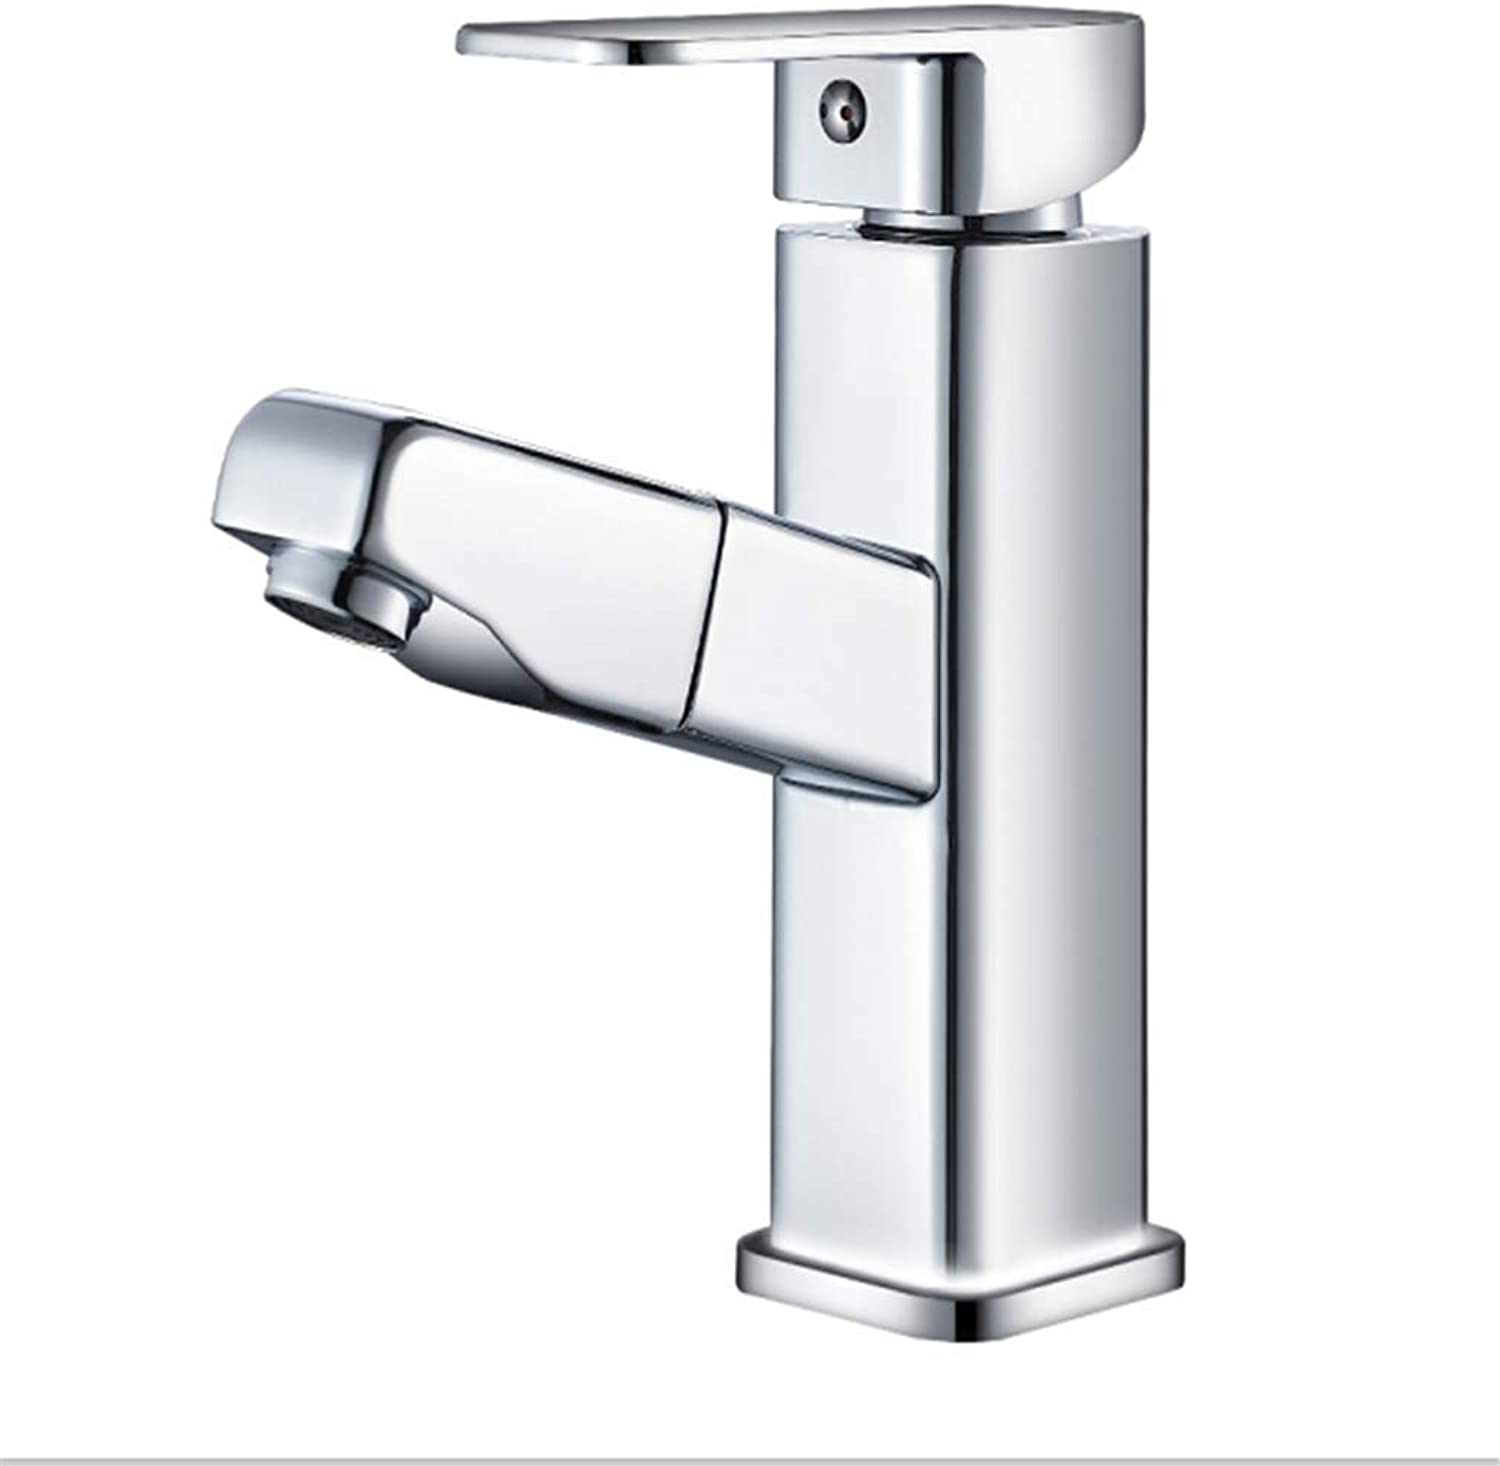 Counter Drinking Designer Archcopper Pull-Out Faucet Single Hole Hot and Cold Wash Basin Faucet